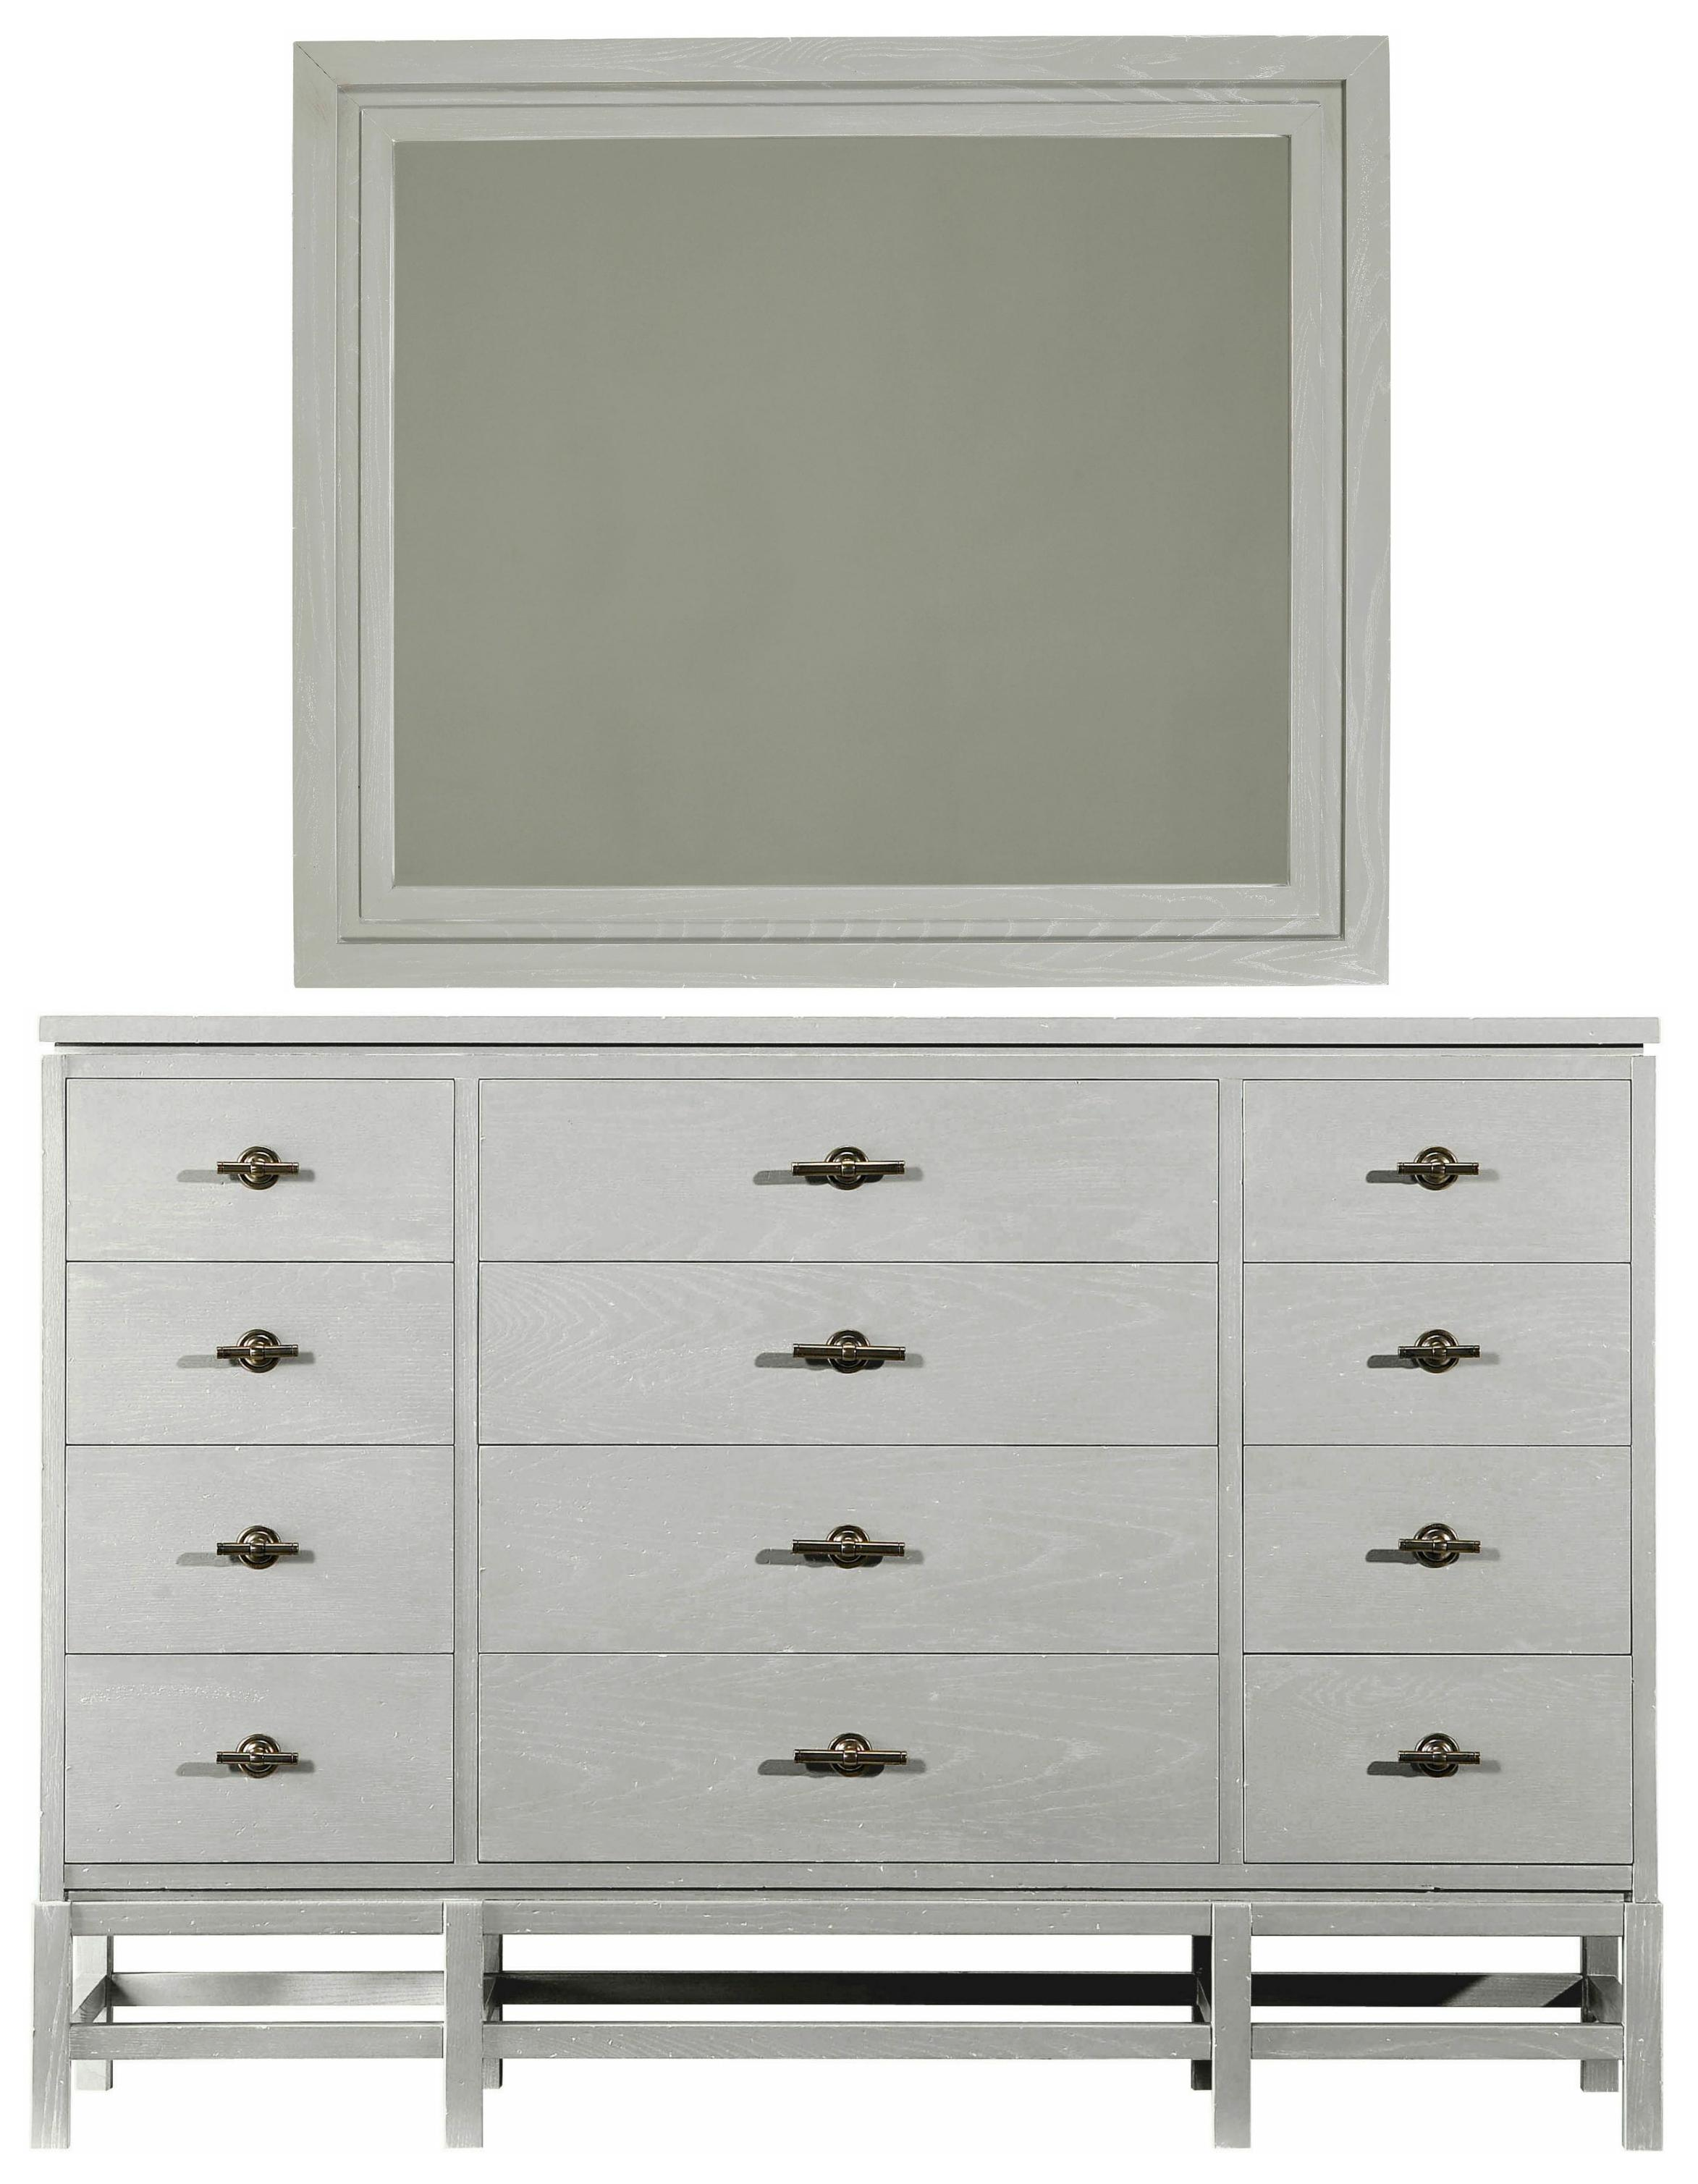 Stanley Furniture Coastal Living Resort Tranquility Isle Dresser & Day's End Mirror - Item Number: 062-C3-06+31